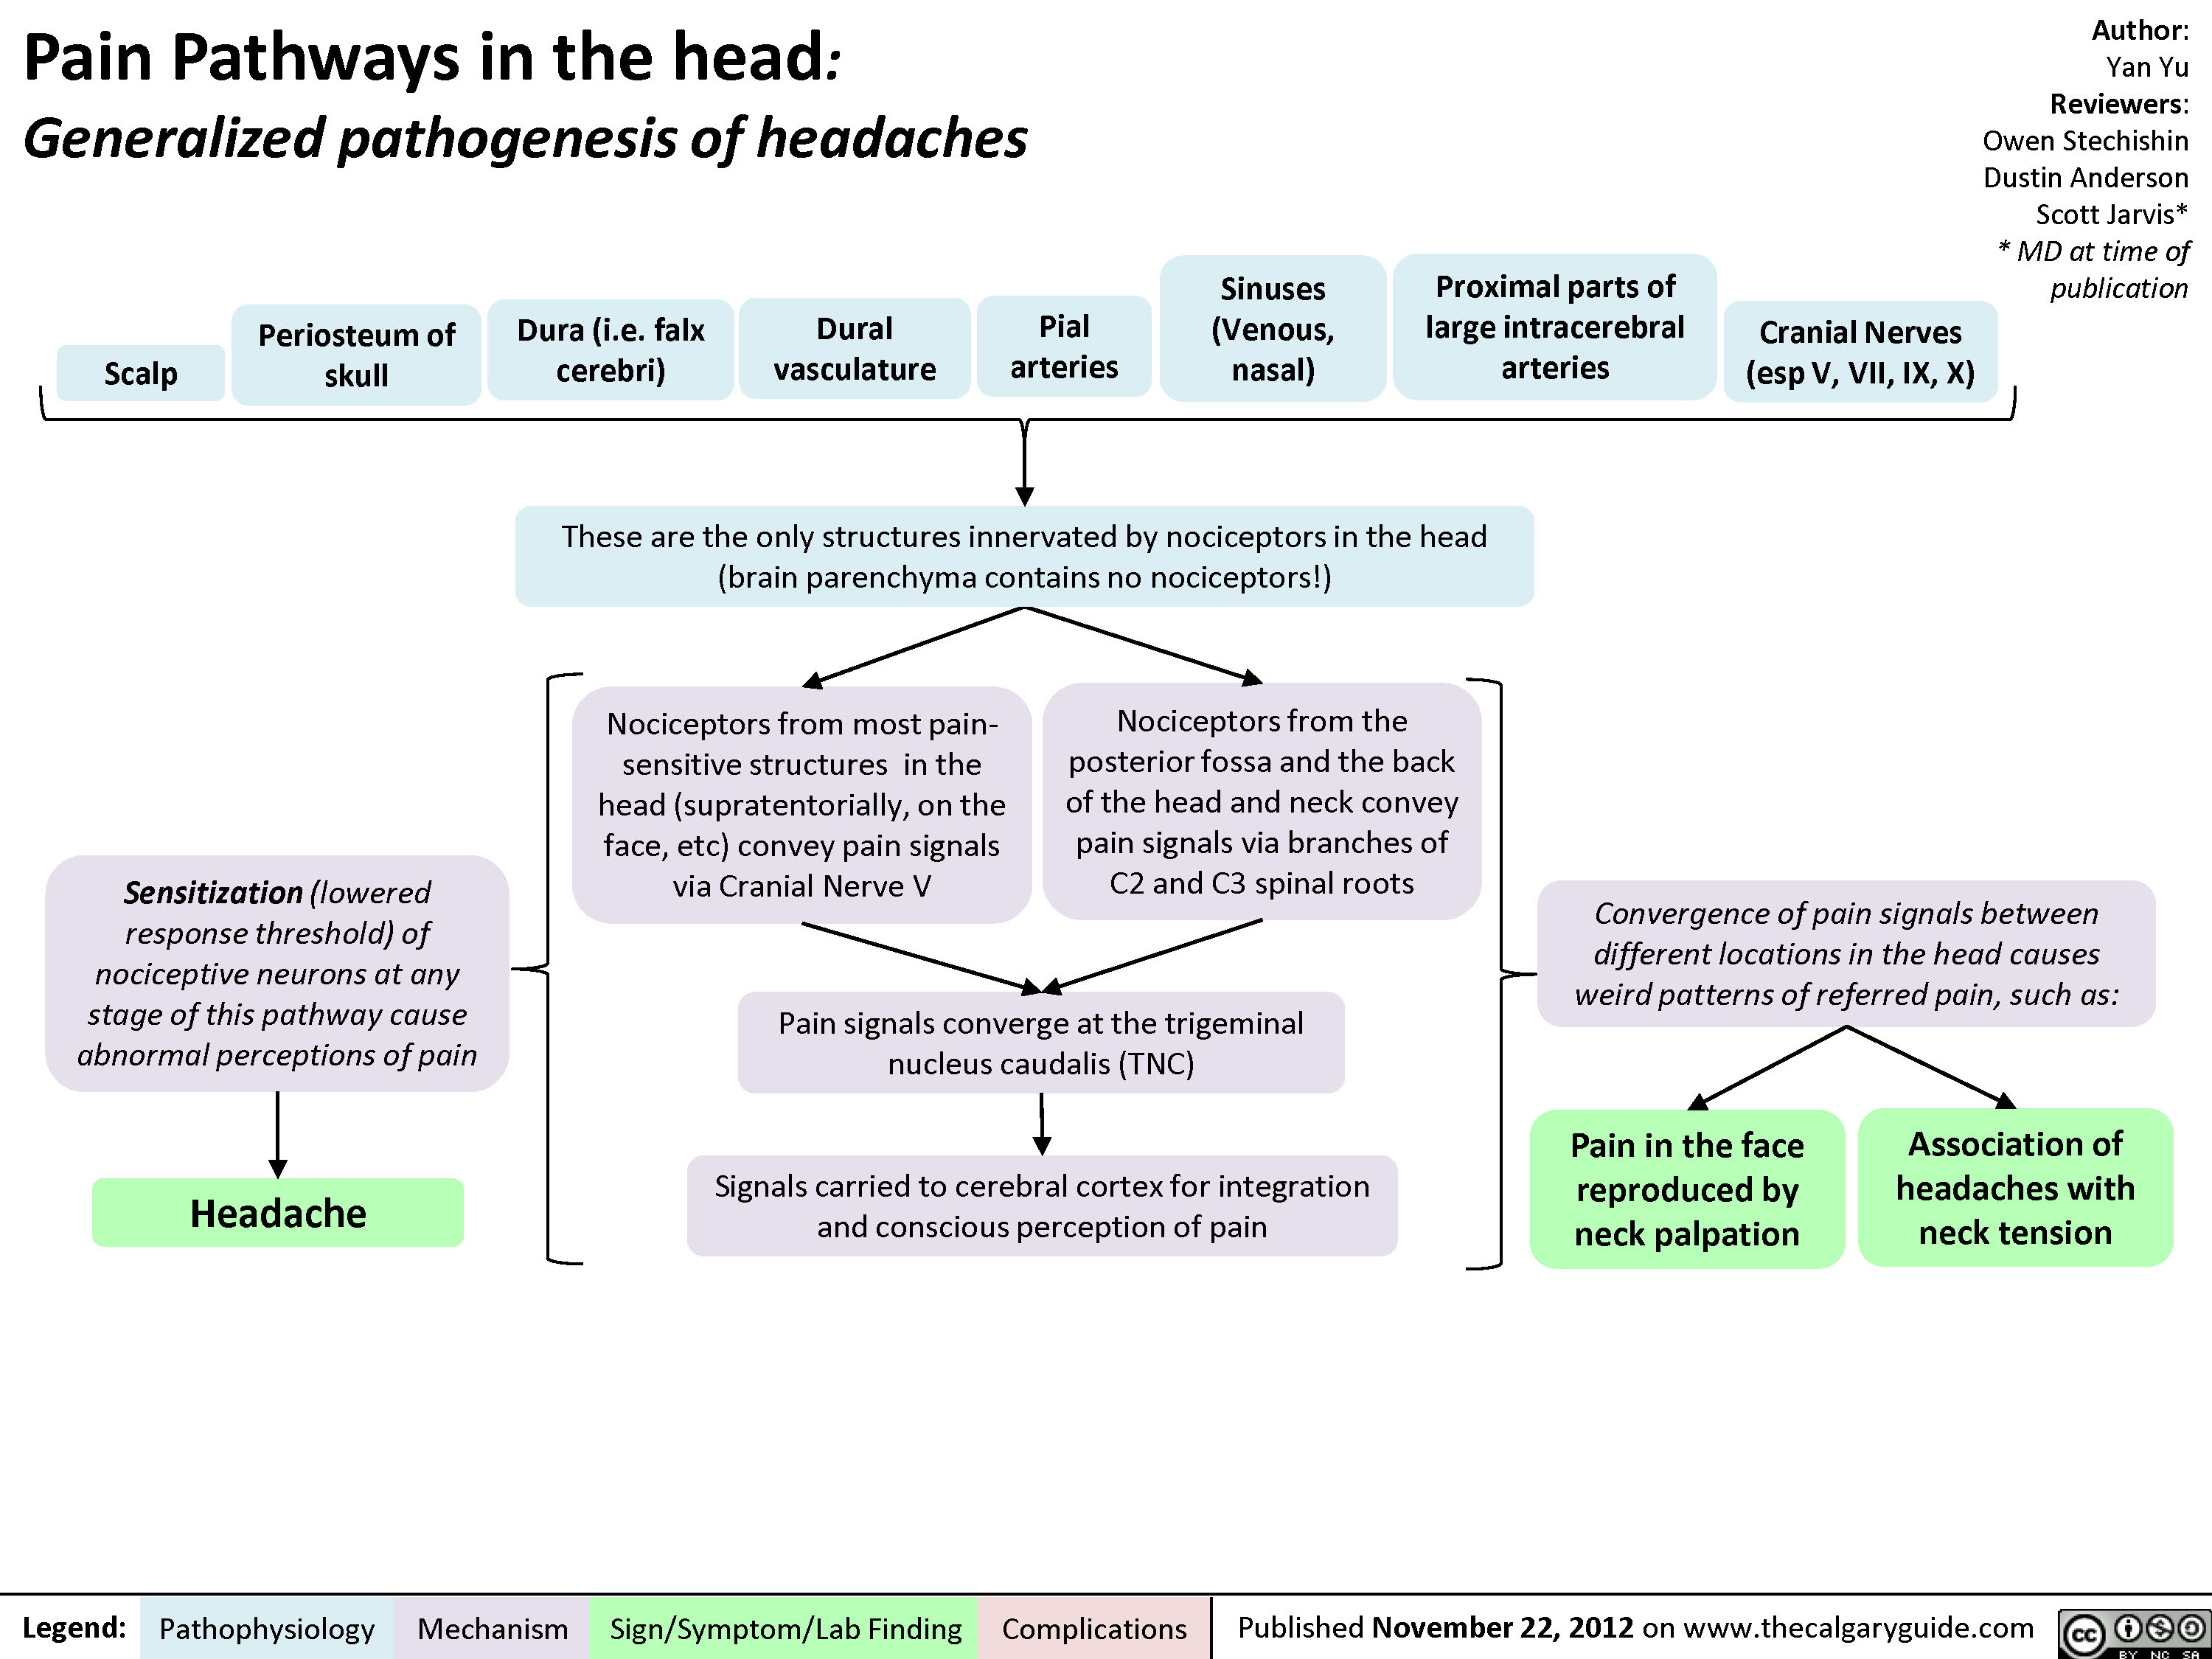 Pain Pathways in the Head